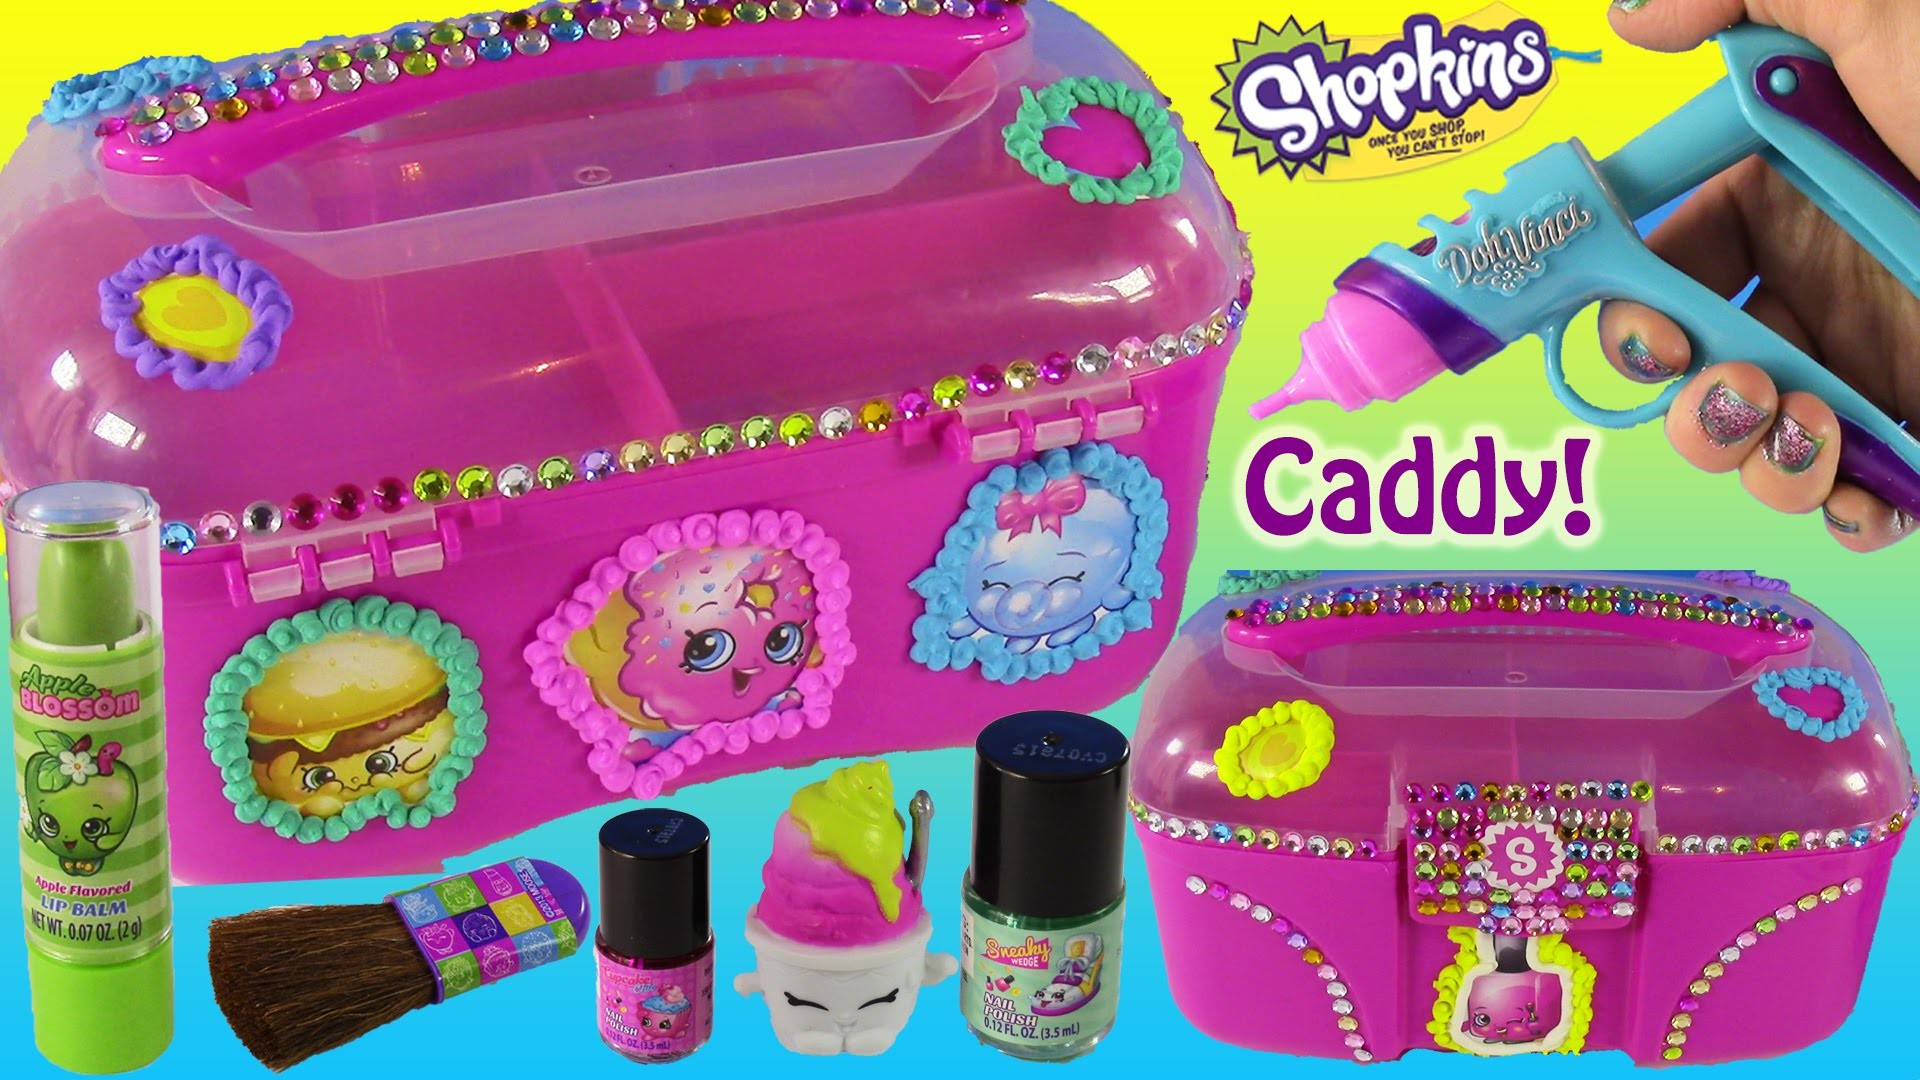 DIY SHOPKINS Makeup & Toy Caboodle! Decorate with DohVinci! Nail Polish & Lip Gloss! FUN